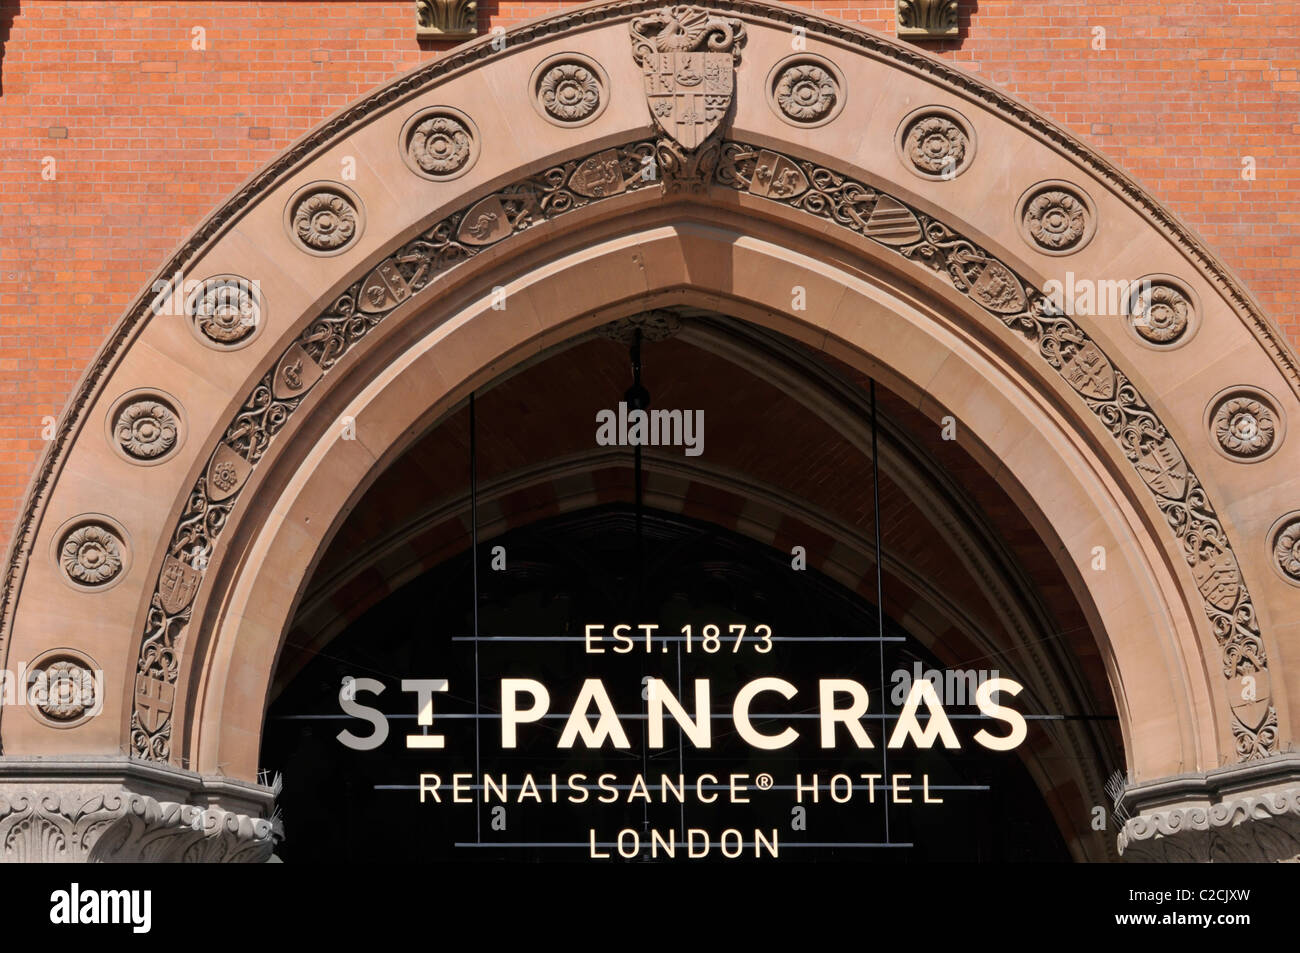 St Pancras Renaissance luxury five star hotel entrance arch & sign in the refurbished Victorian now Euro Star - Stock Image